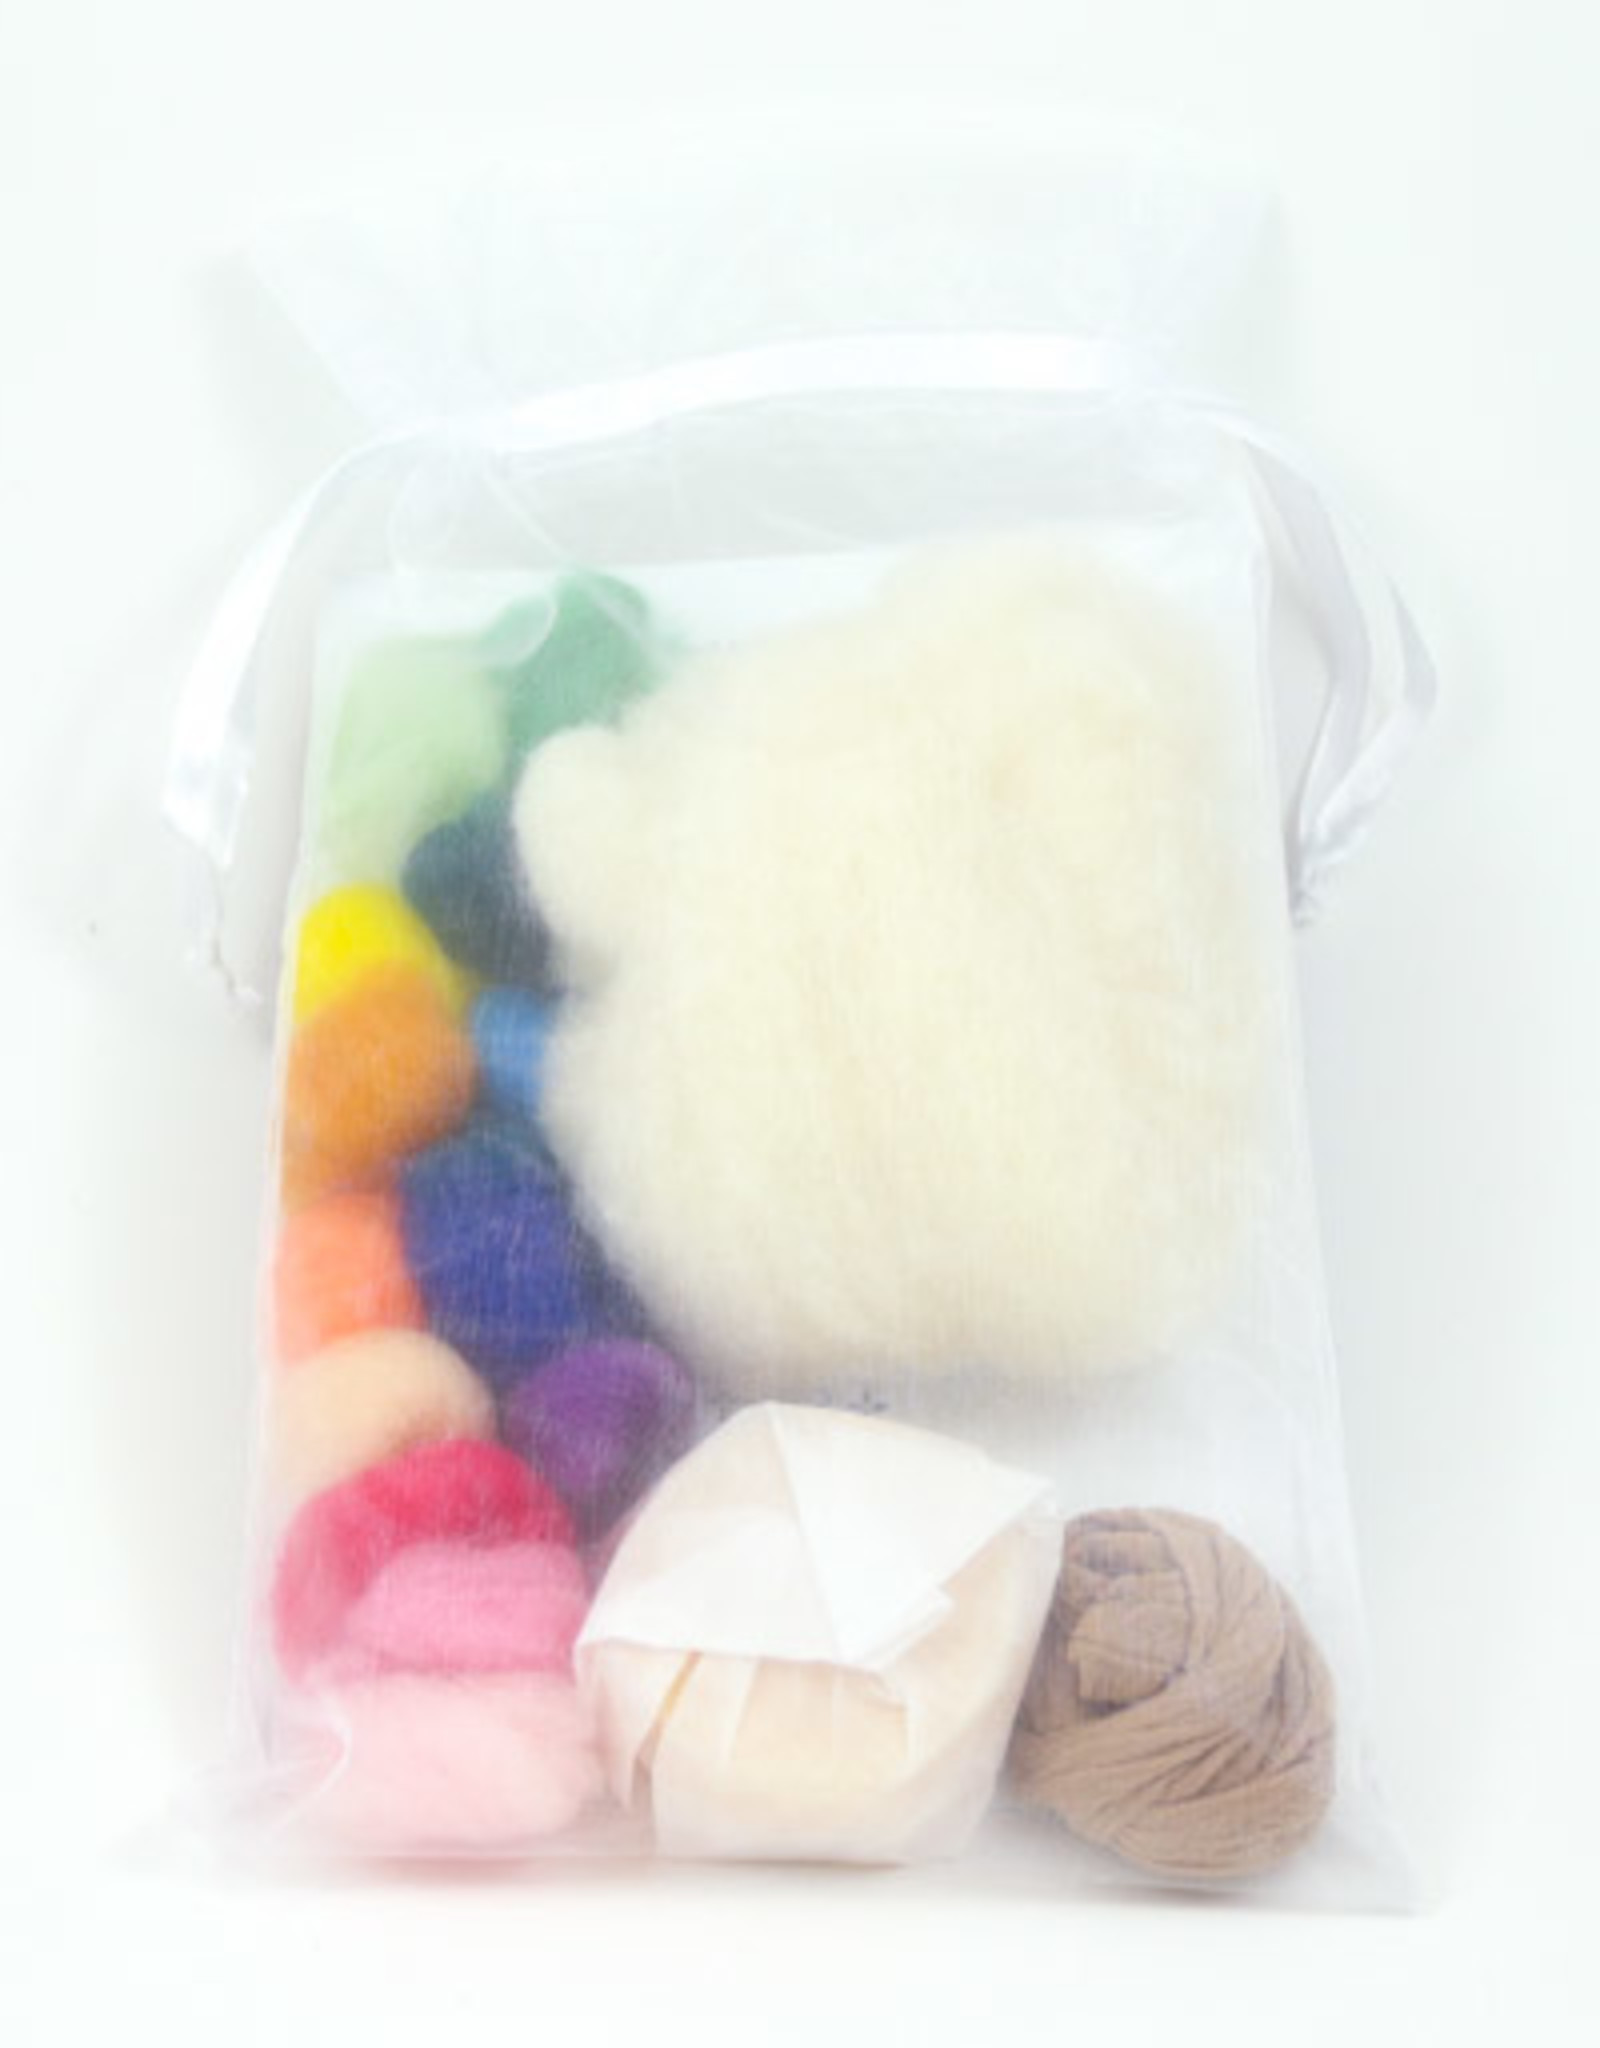 Fiat Luxe Fiat Luxe Felted Soap Kit